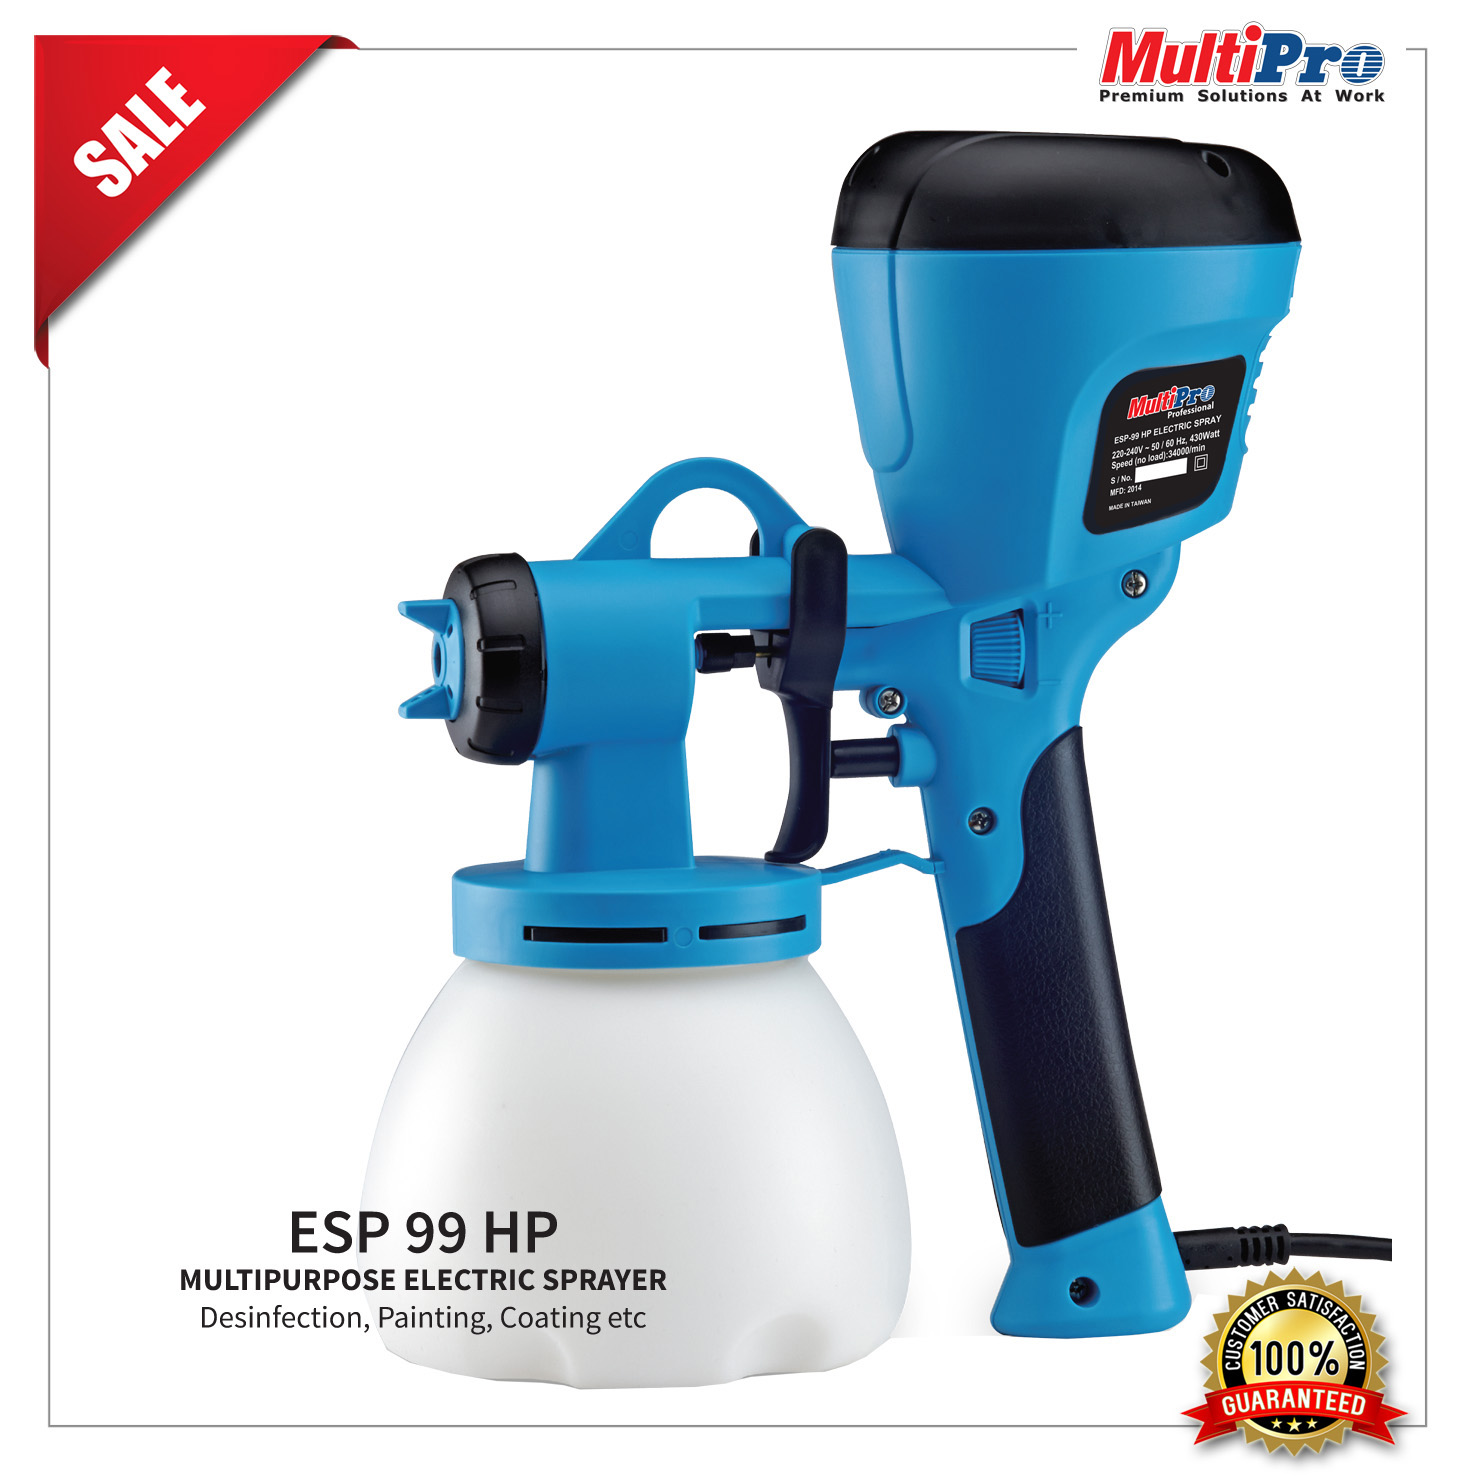 PRODUCT PROFILE – ESP 99 HP – 1